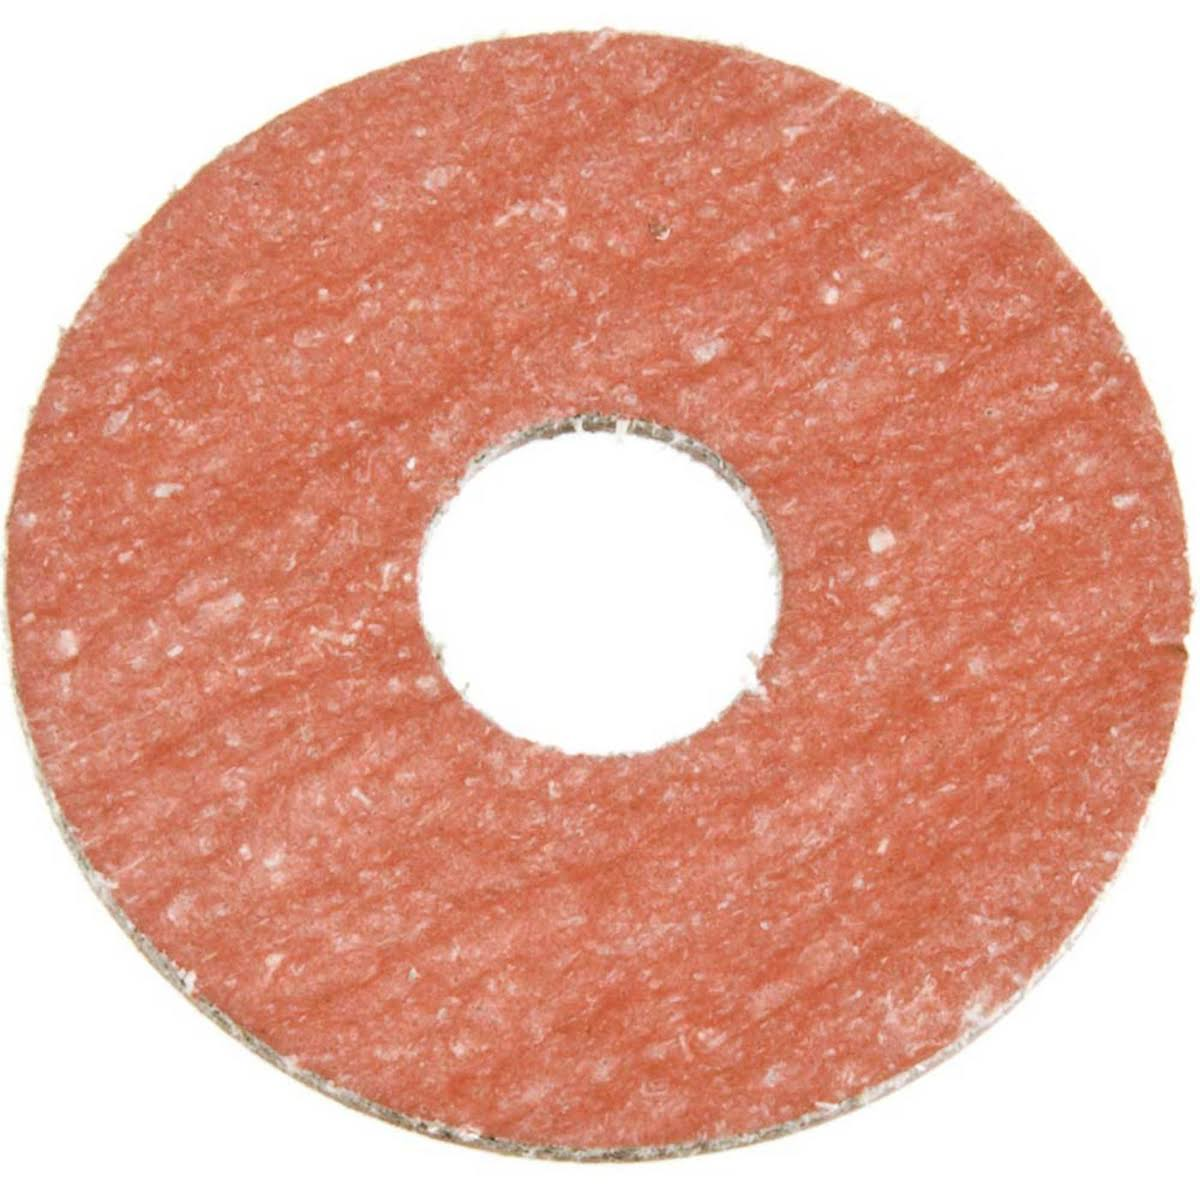 Axial Slipper Pad - 27 x 8 x 1mm